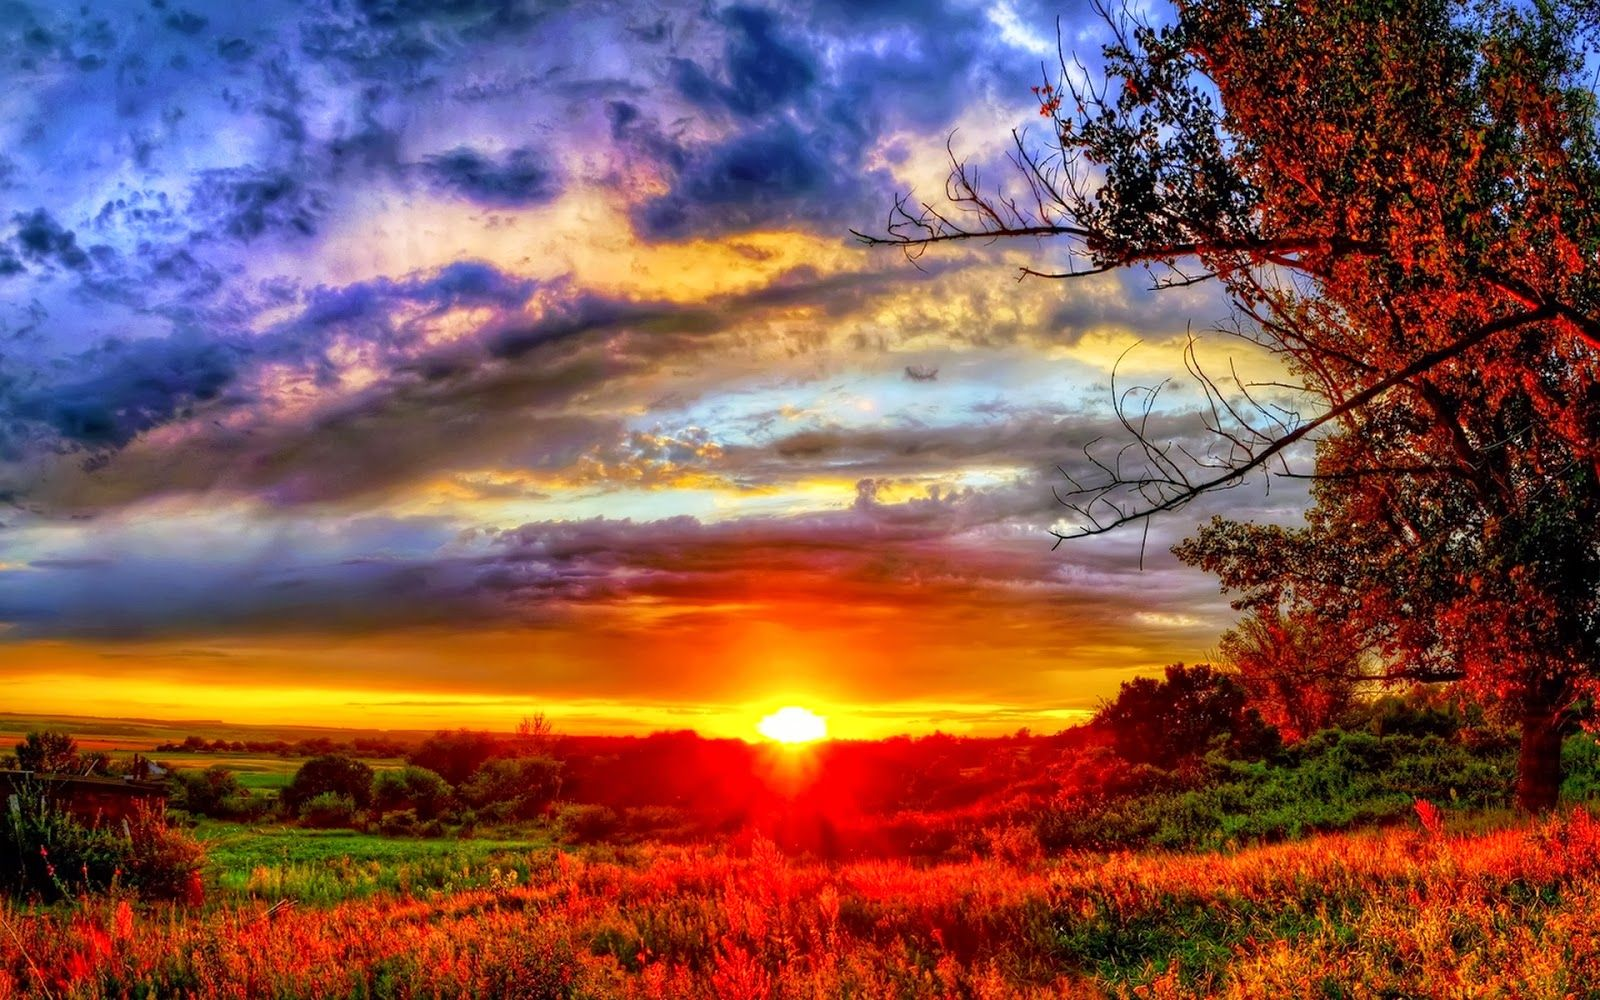 Most Beautiful Pictures of Sunrise | Download beautiful sunrise wallpapers for your d… |